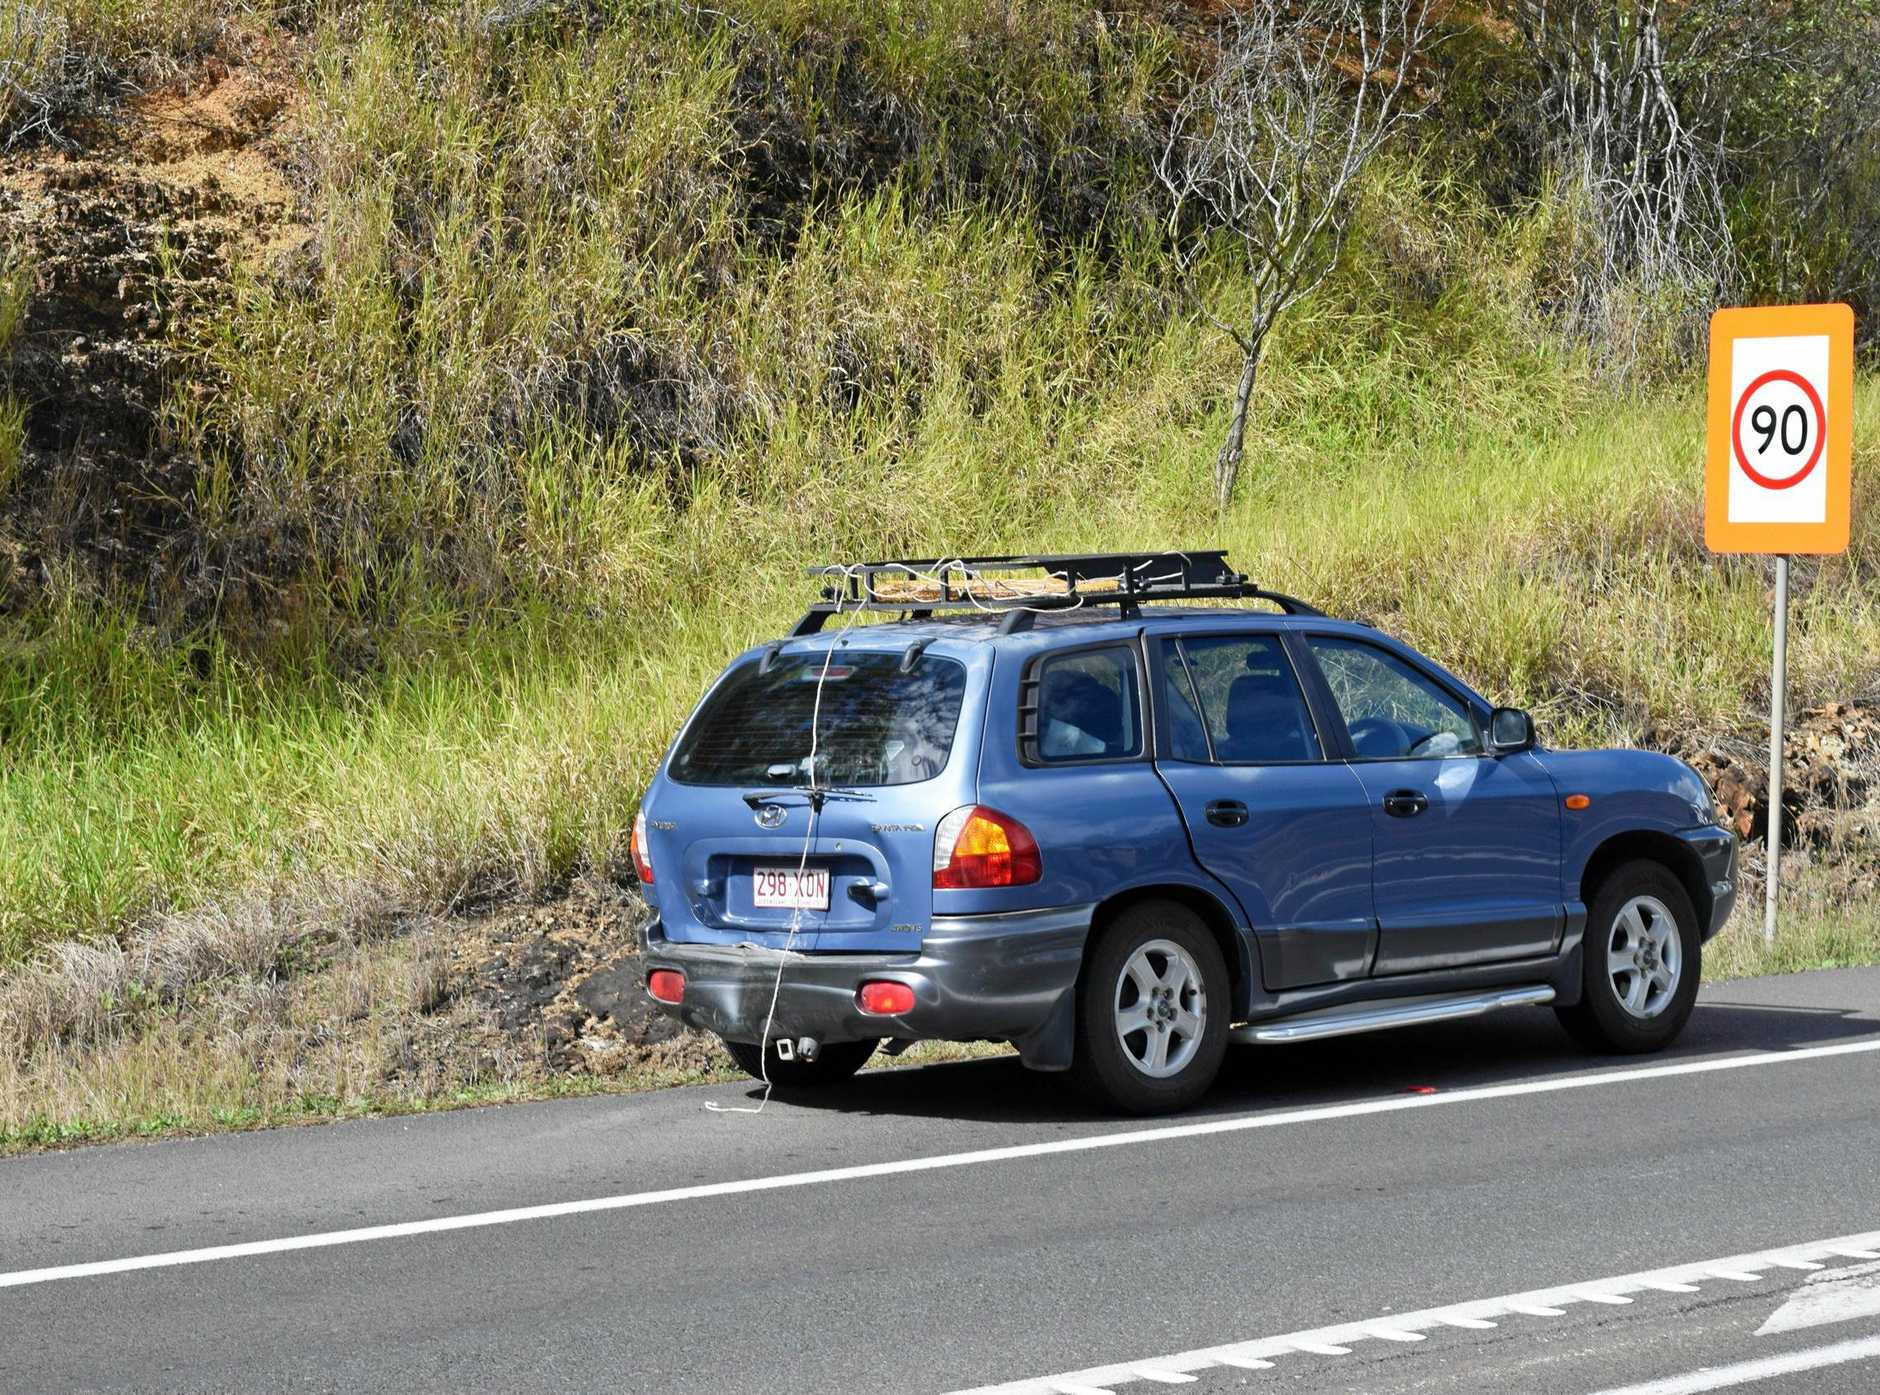 HIGHWAY CRASH: Two people were taken to hospital after a crash near the Kilkivan/Wide Bay Highway turnoff.